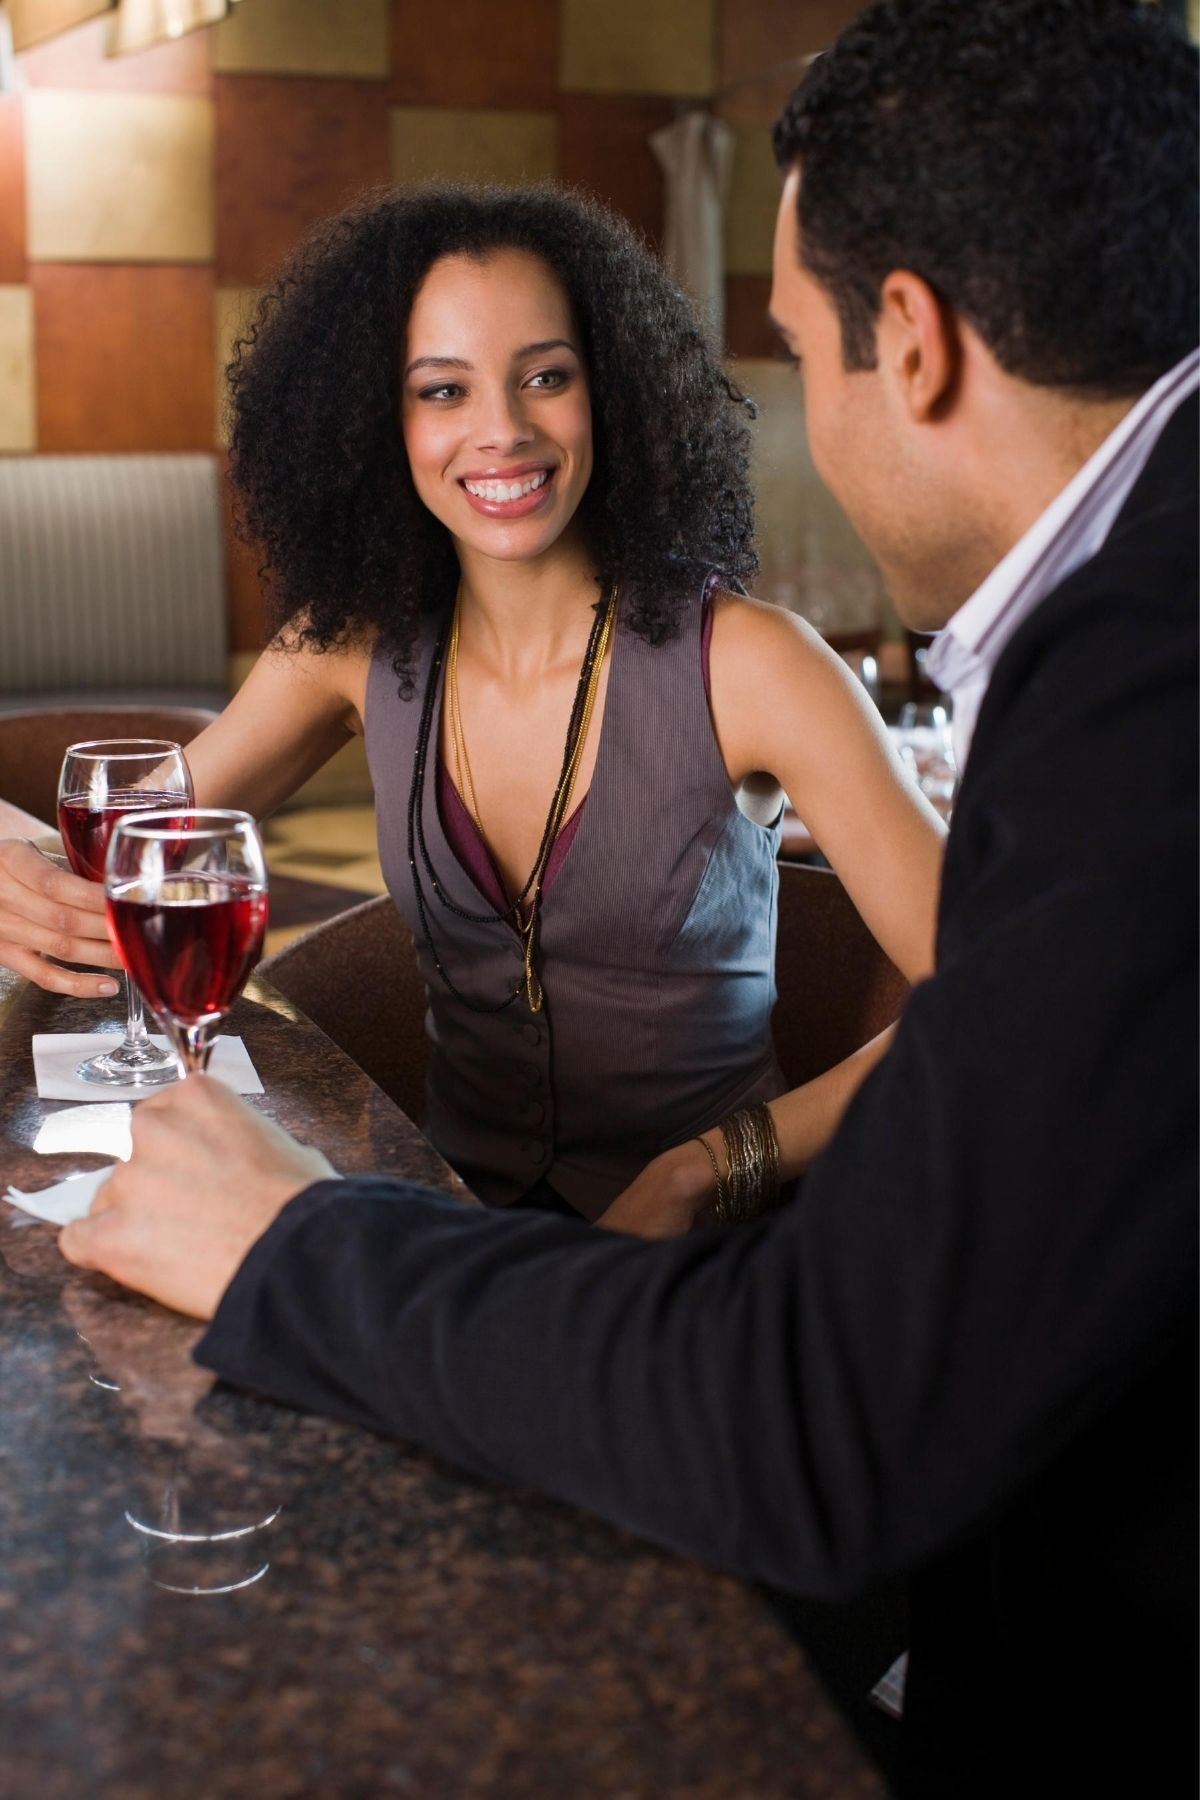 two people having a drink in a bar